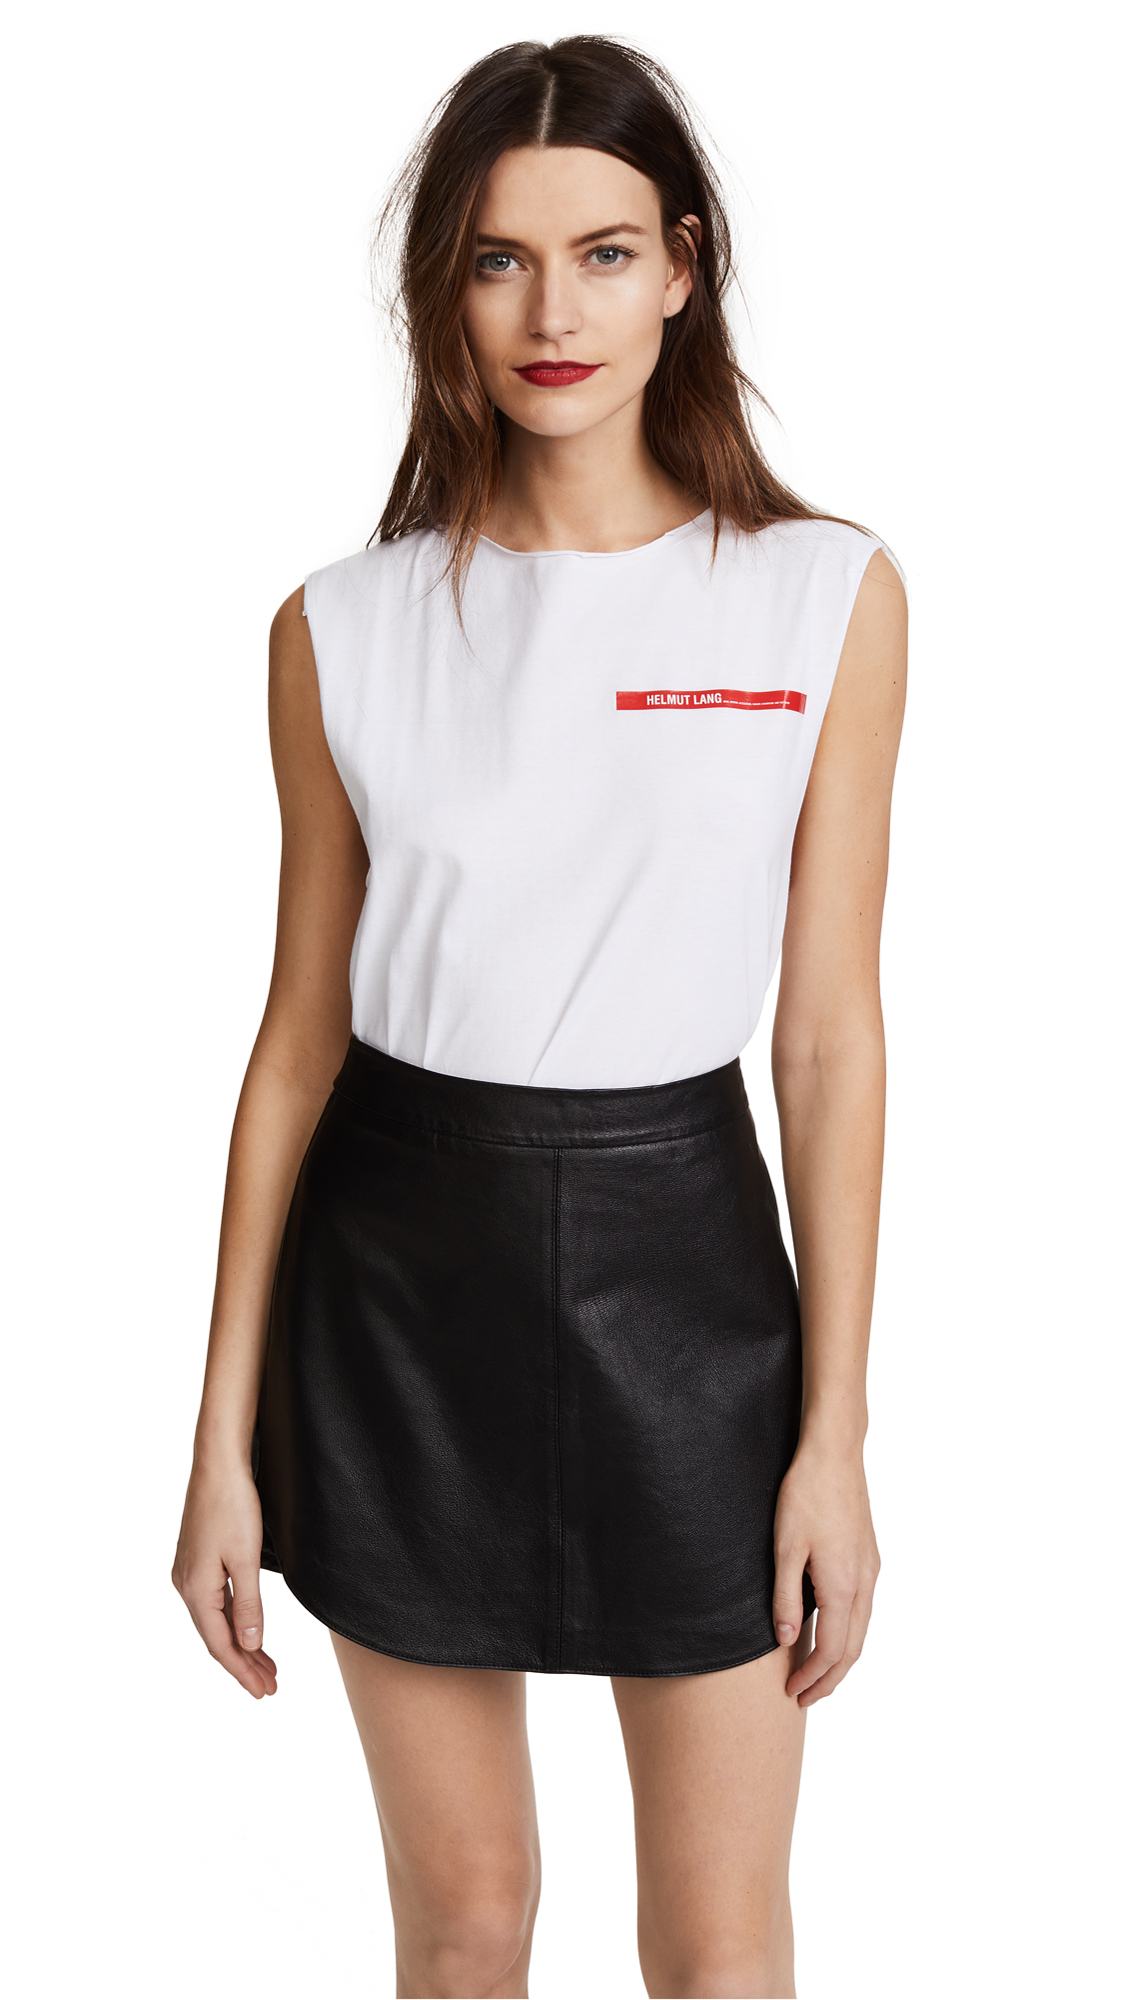 Helmut Lang Raw Edge Muscle Tee - White/Red